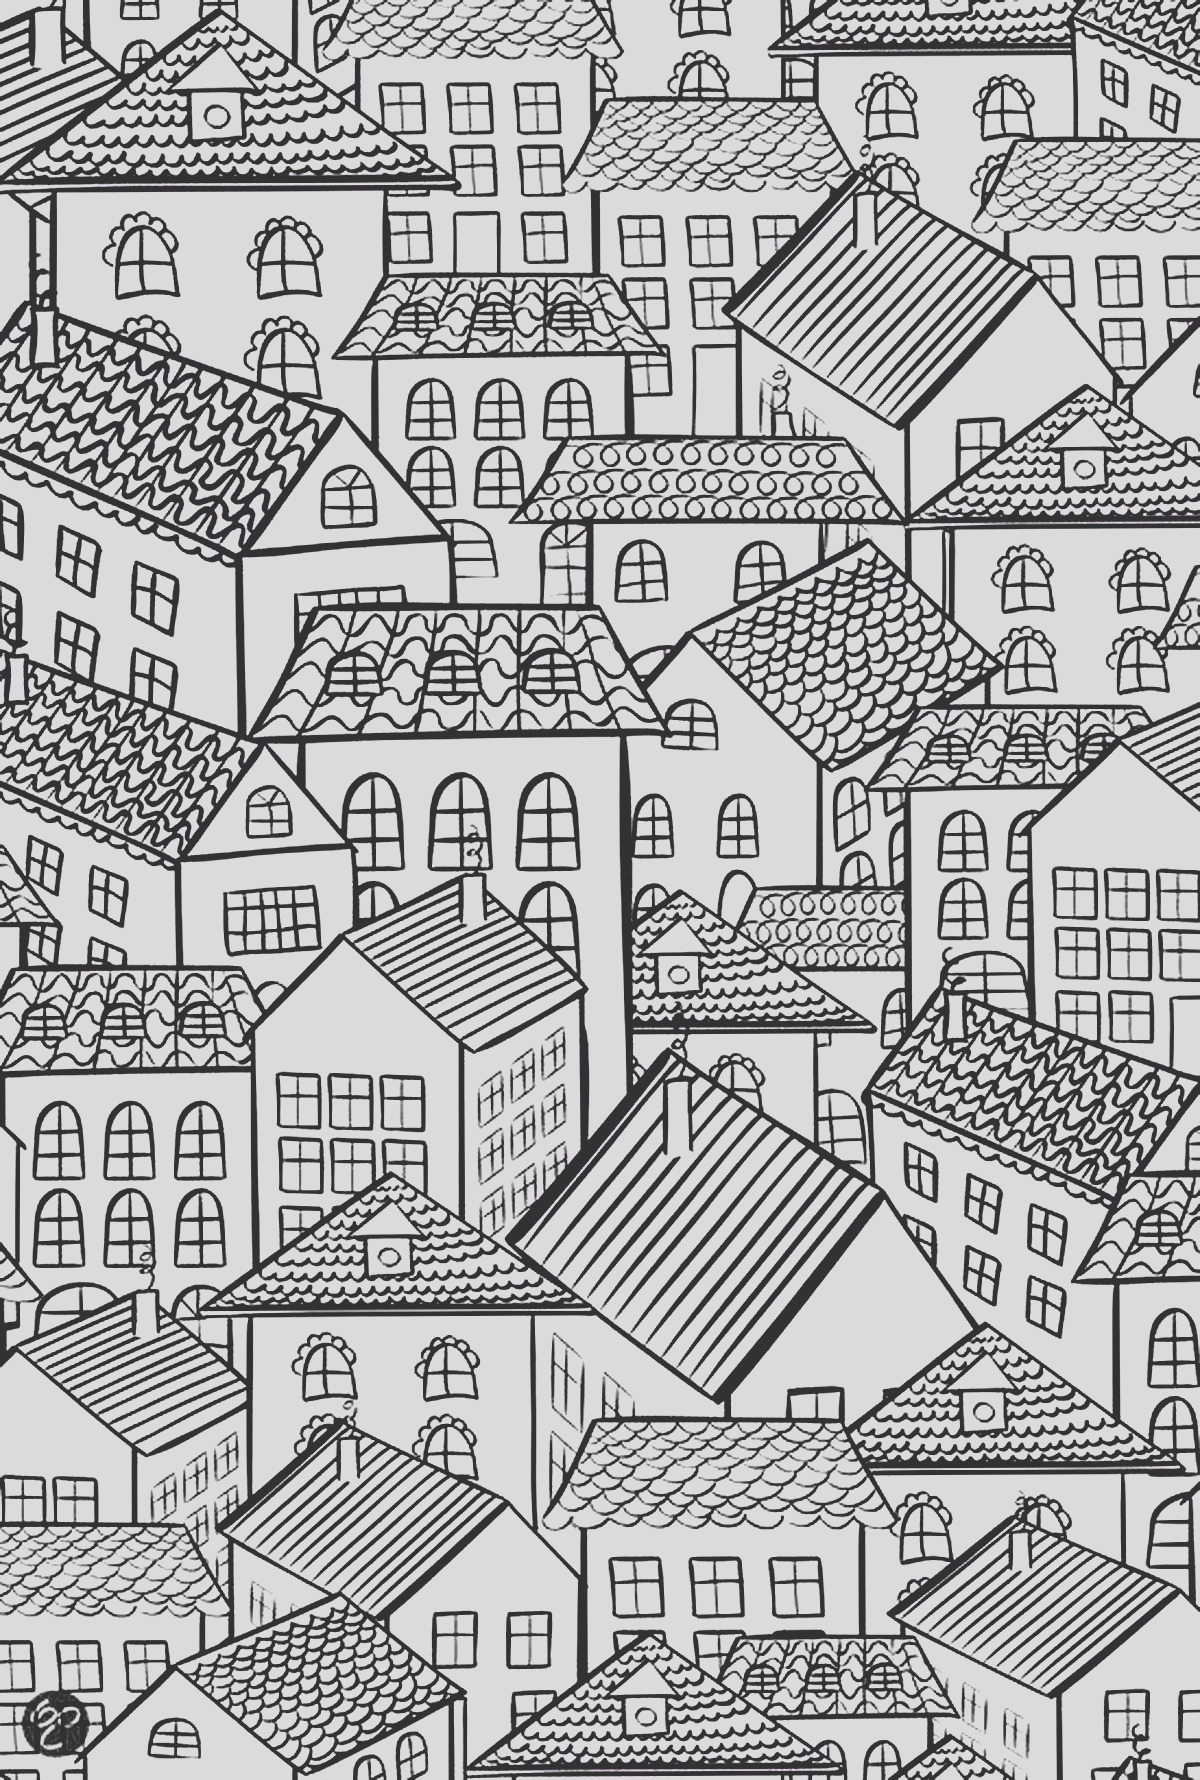 image=architecture home coloring architecture village roofs 1